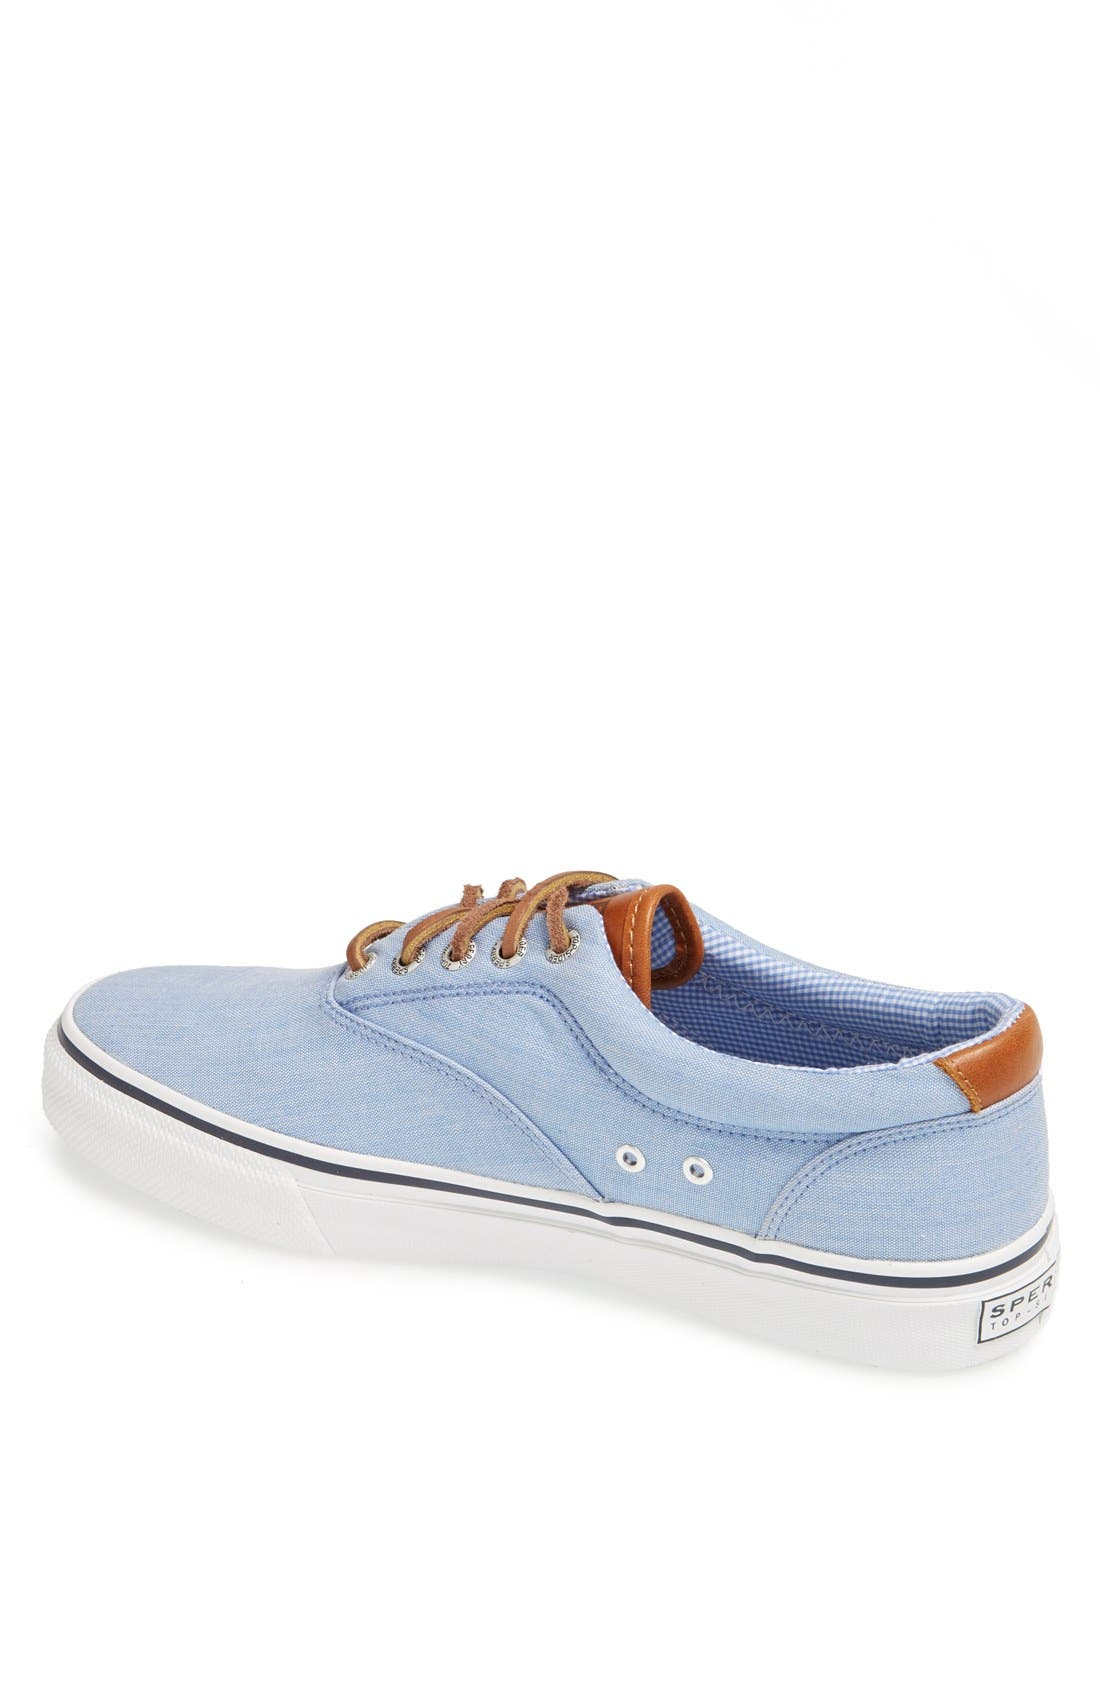 Alternate Image 2  - Sperry Top-Sider® 'CVO' Chambray Sneaker (Men)